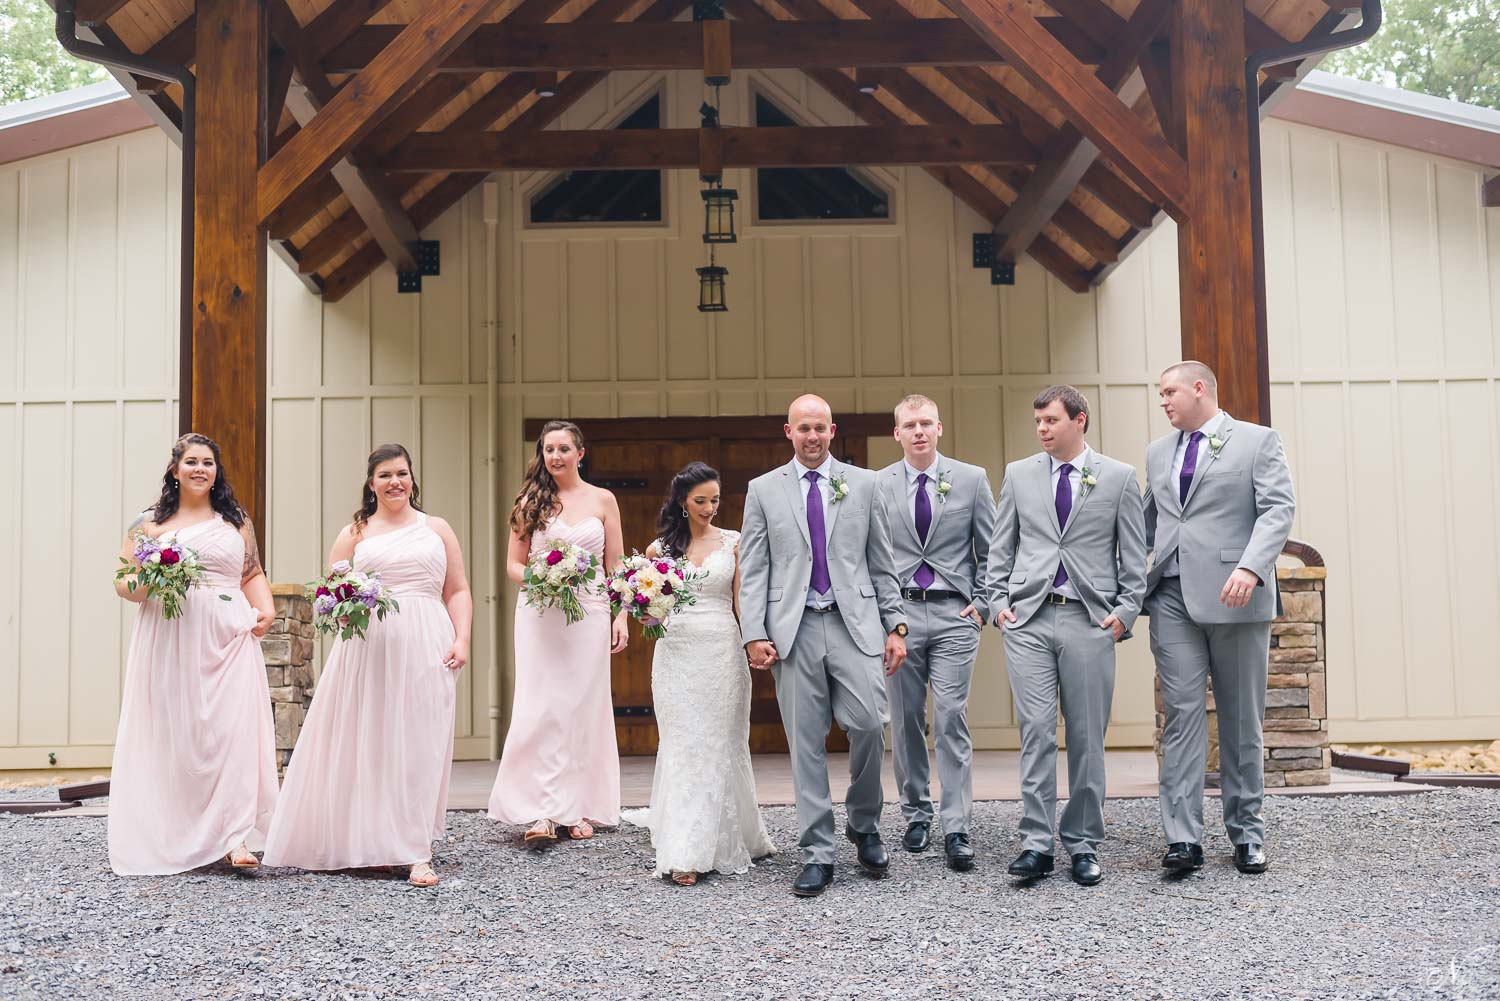 bridal party in pale pink and gray with purple ties